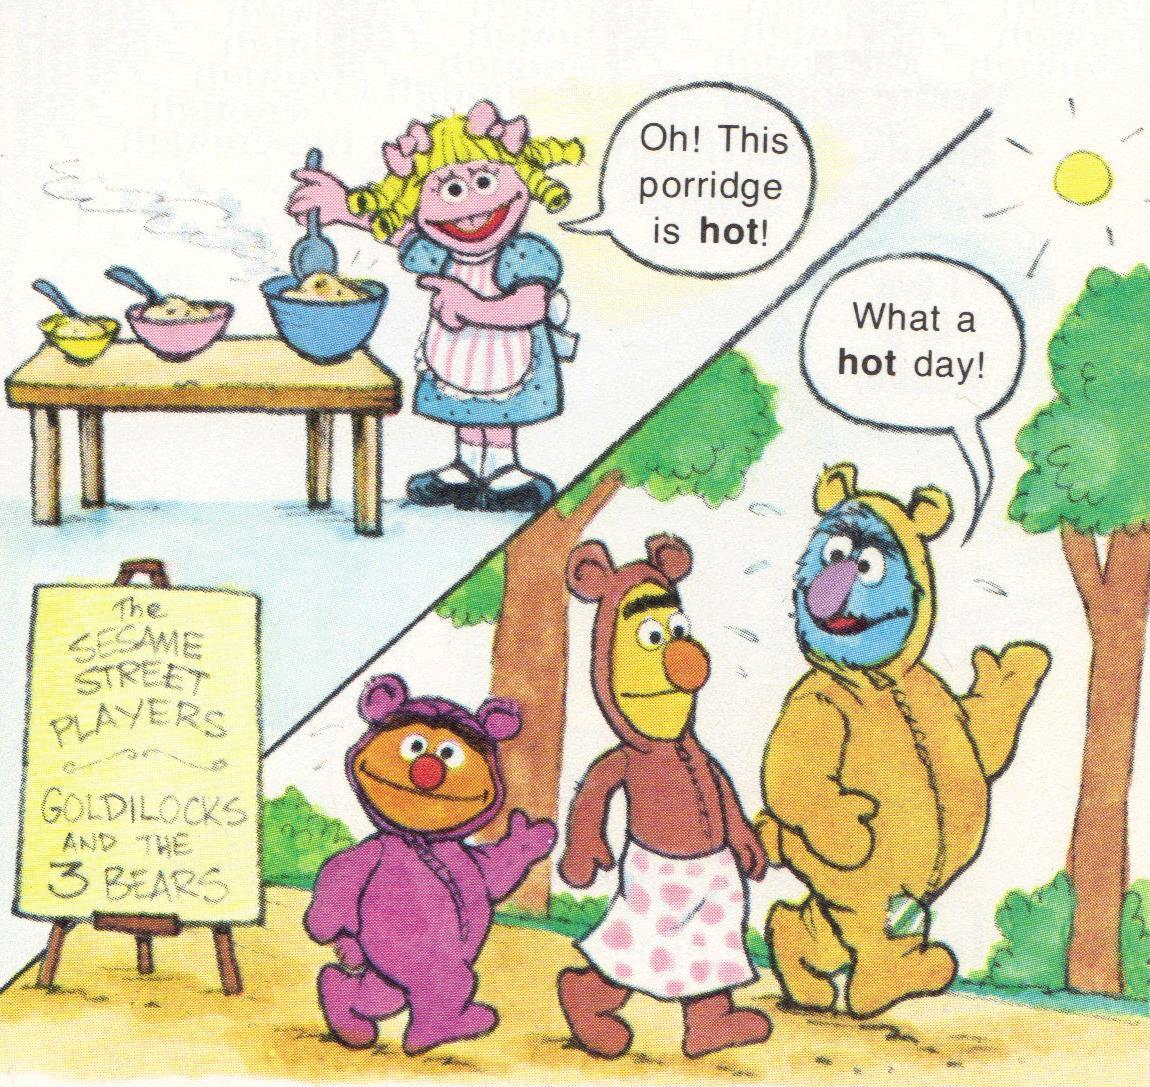 ... Sesame Street Players production of Goldilocks and the Three Bears